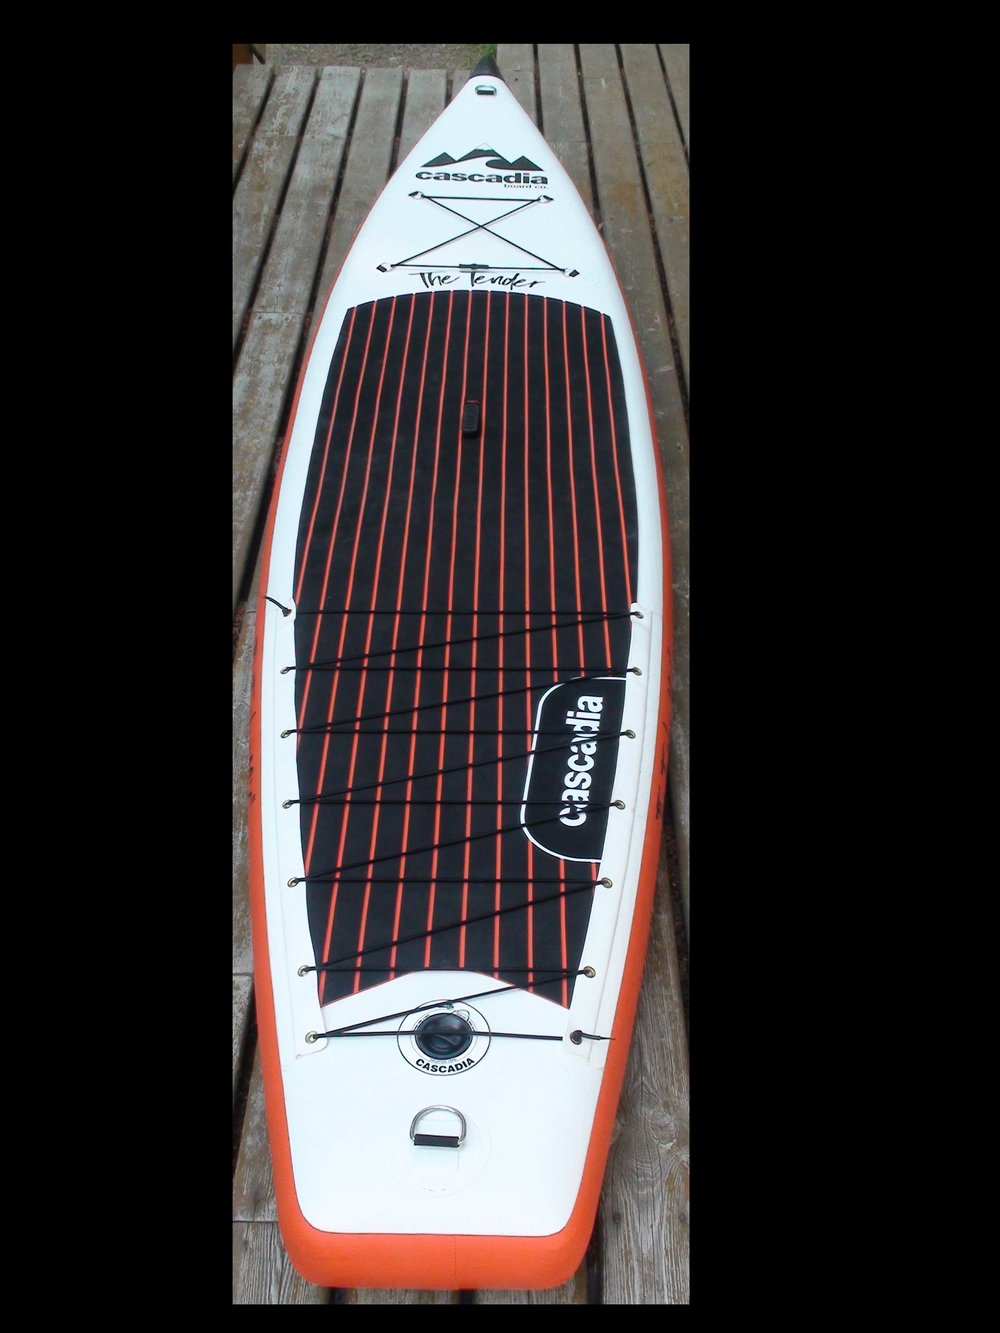 "The Cascadia 12' 6"" Tender Inflatable Stand Up Paddle Board for multi-day Stand Up Paddle Board adventures."